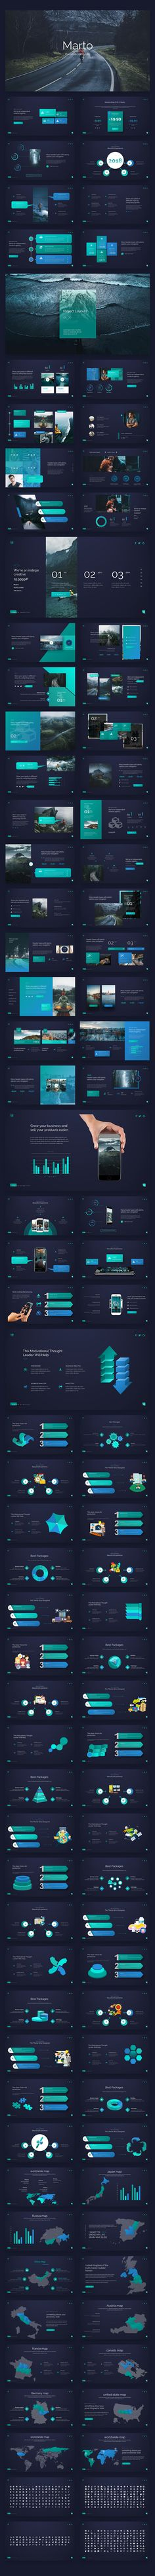 #keynote #keynotetemplate #templateskeynote #modern #design #envato #envatomarket #graphicriver #business #freekeynote #freedesign #premiumdesign #presentations #templatespresentation #googleslides  #templategoogleslides #powerpointtemplates Marto Keynote Template - Keynote Templates Presentation Templates Download here : https://graphicriver.net/item/marto-premium-keynote-template/21575591?s_rank=2&ref=Al-fatih